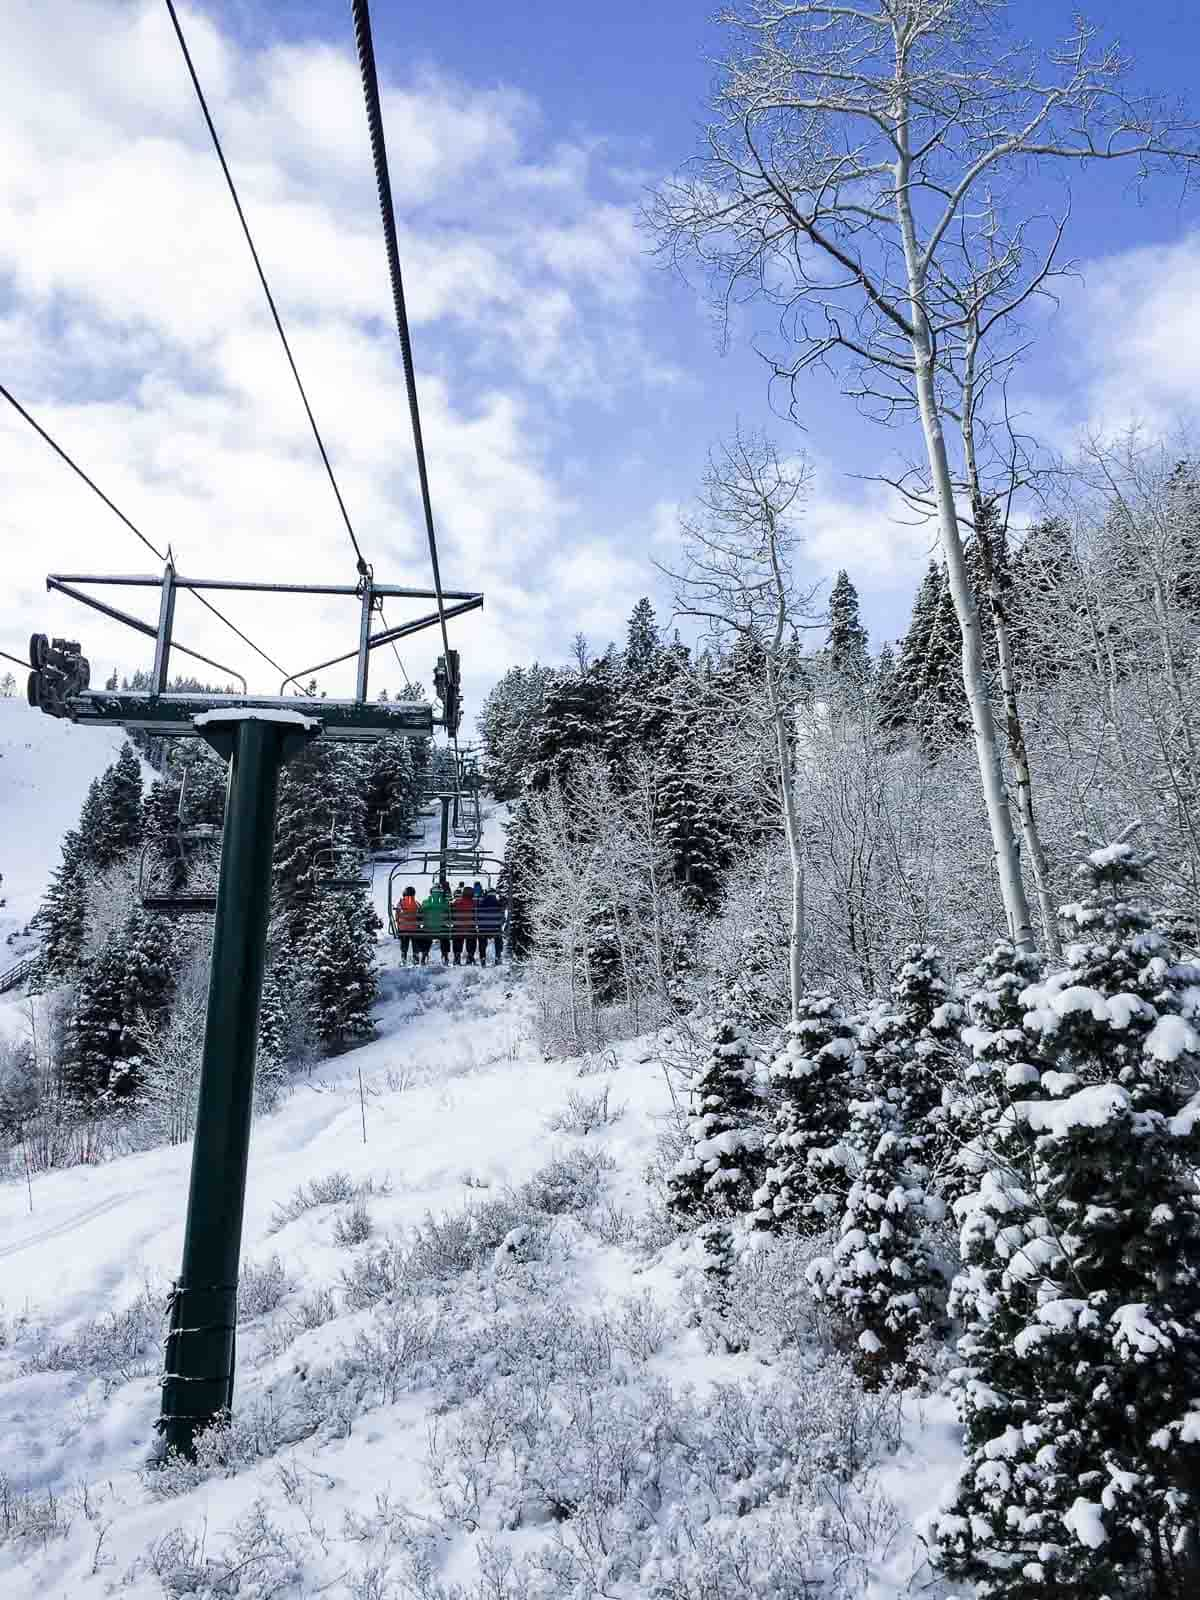 Chairlift at Deer Valley